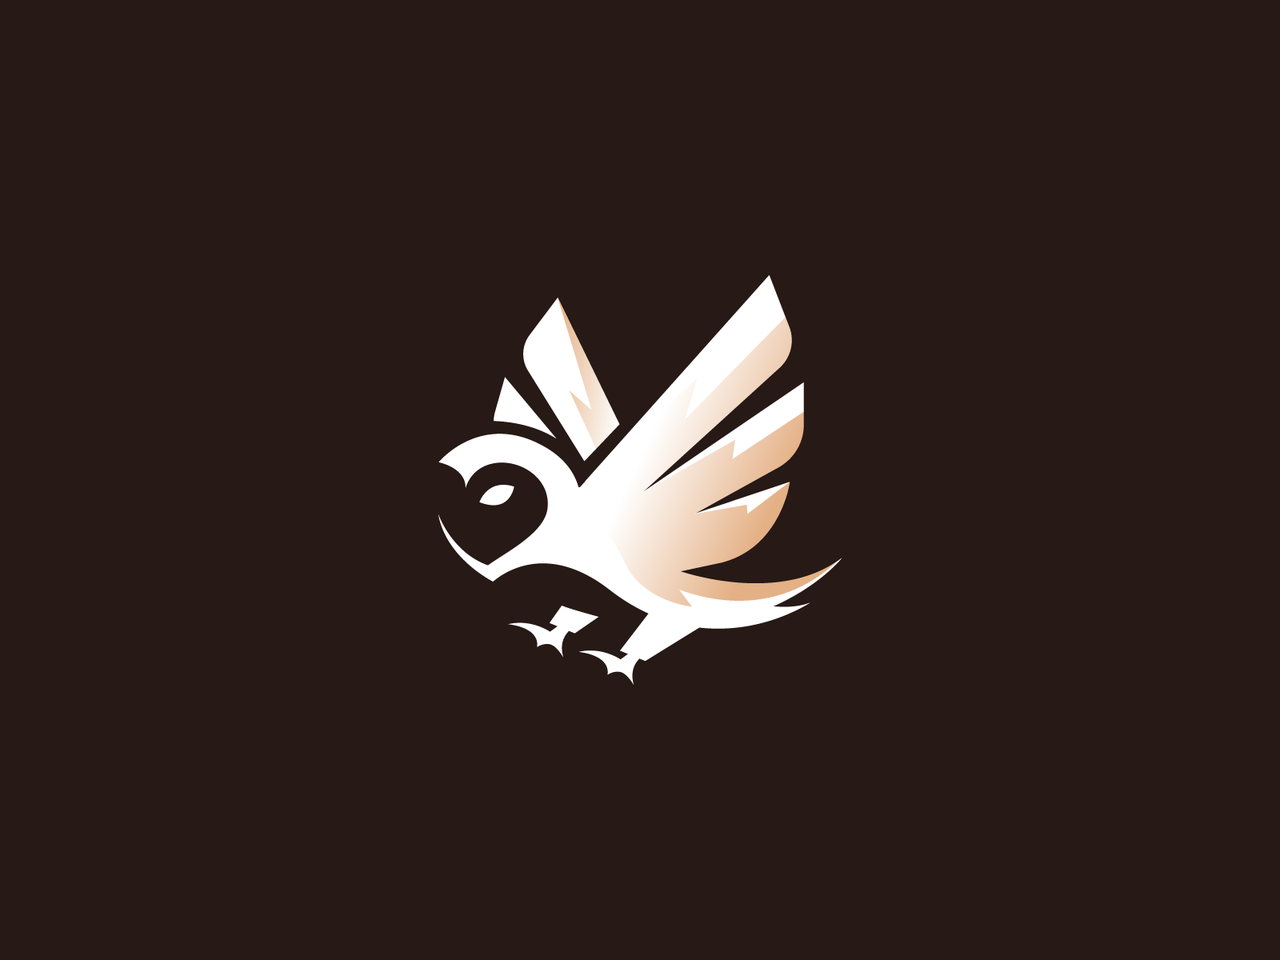 Owl logo with spread wings